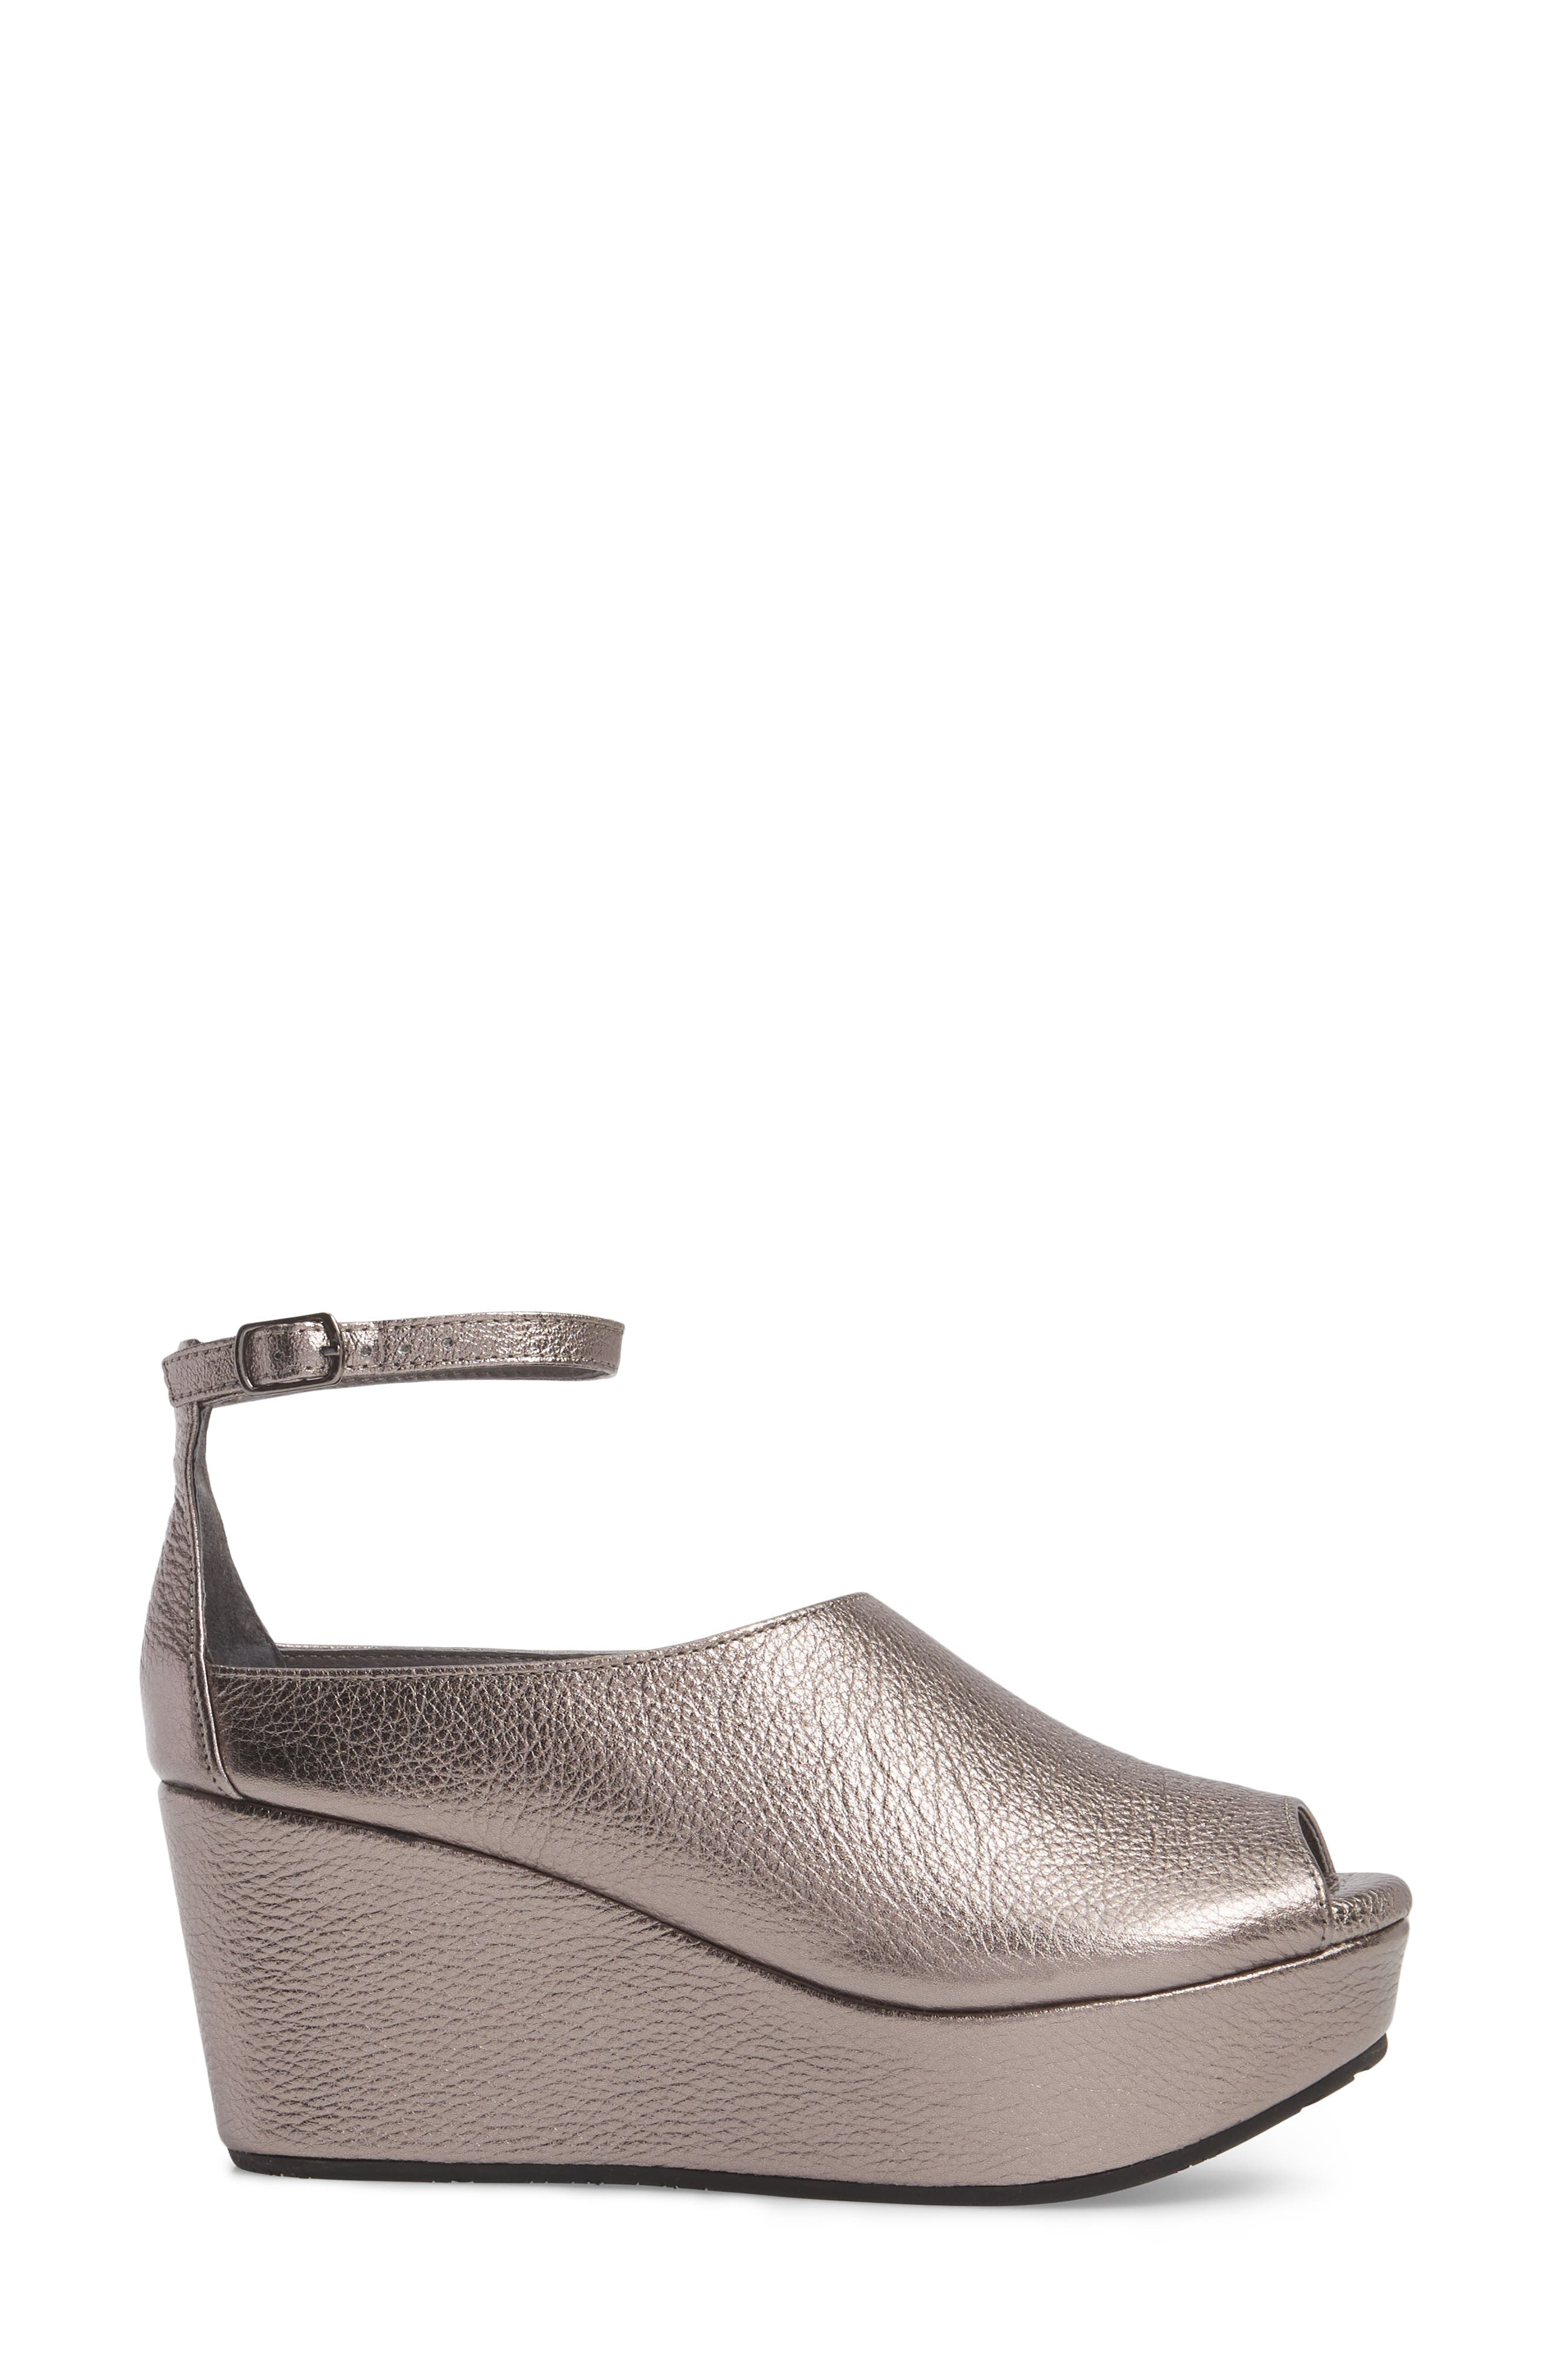 Walter Ankle Strap Wedge Sandal,                             Alternate thumbnail 3, color,                             GUNMETAL LEATHER